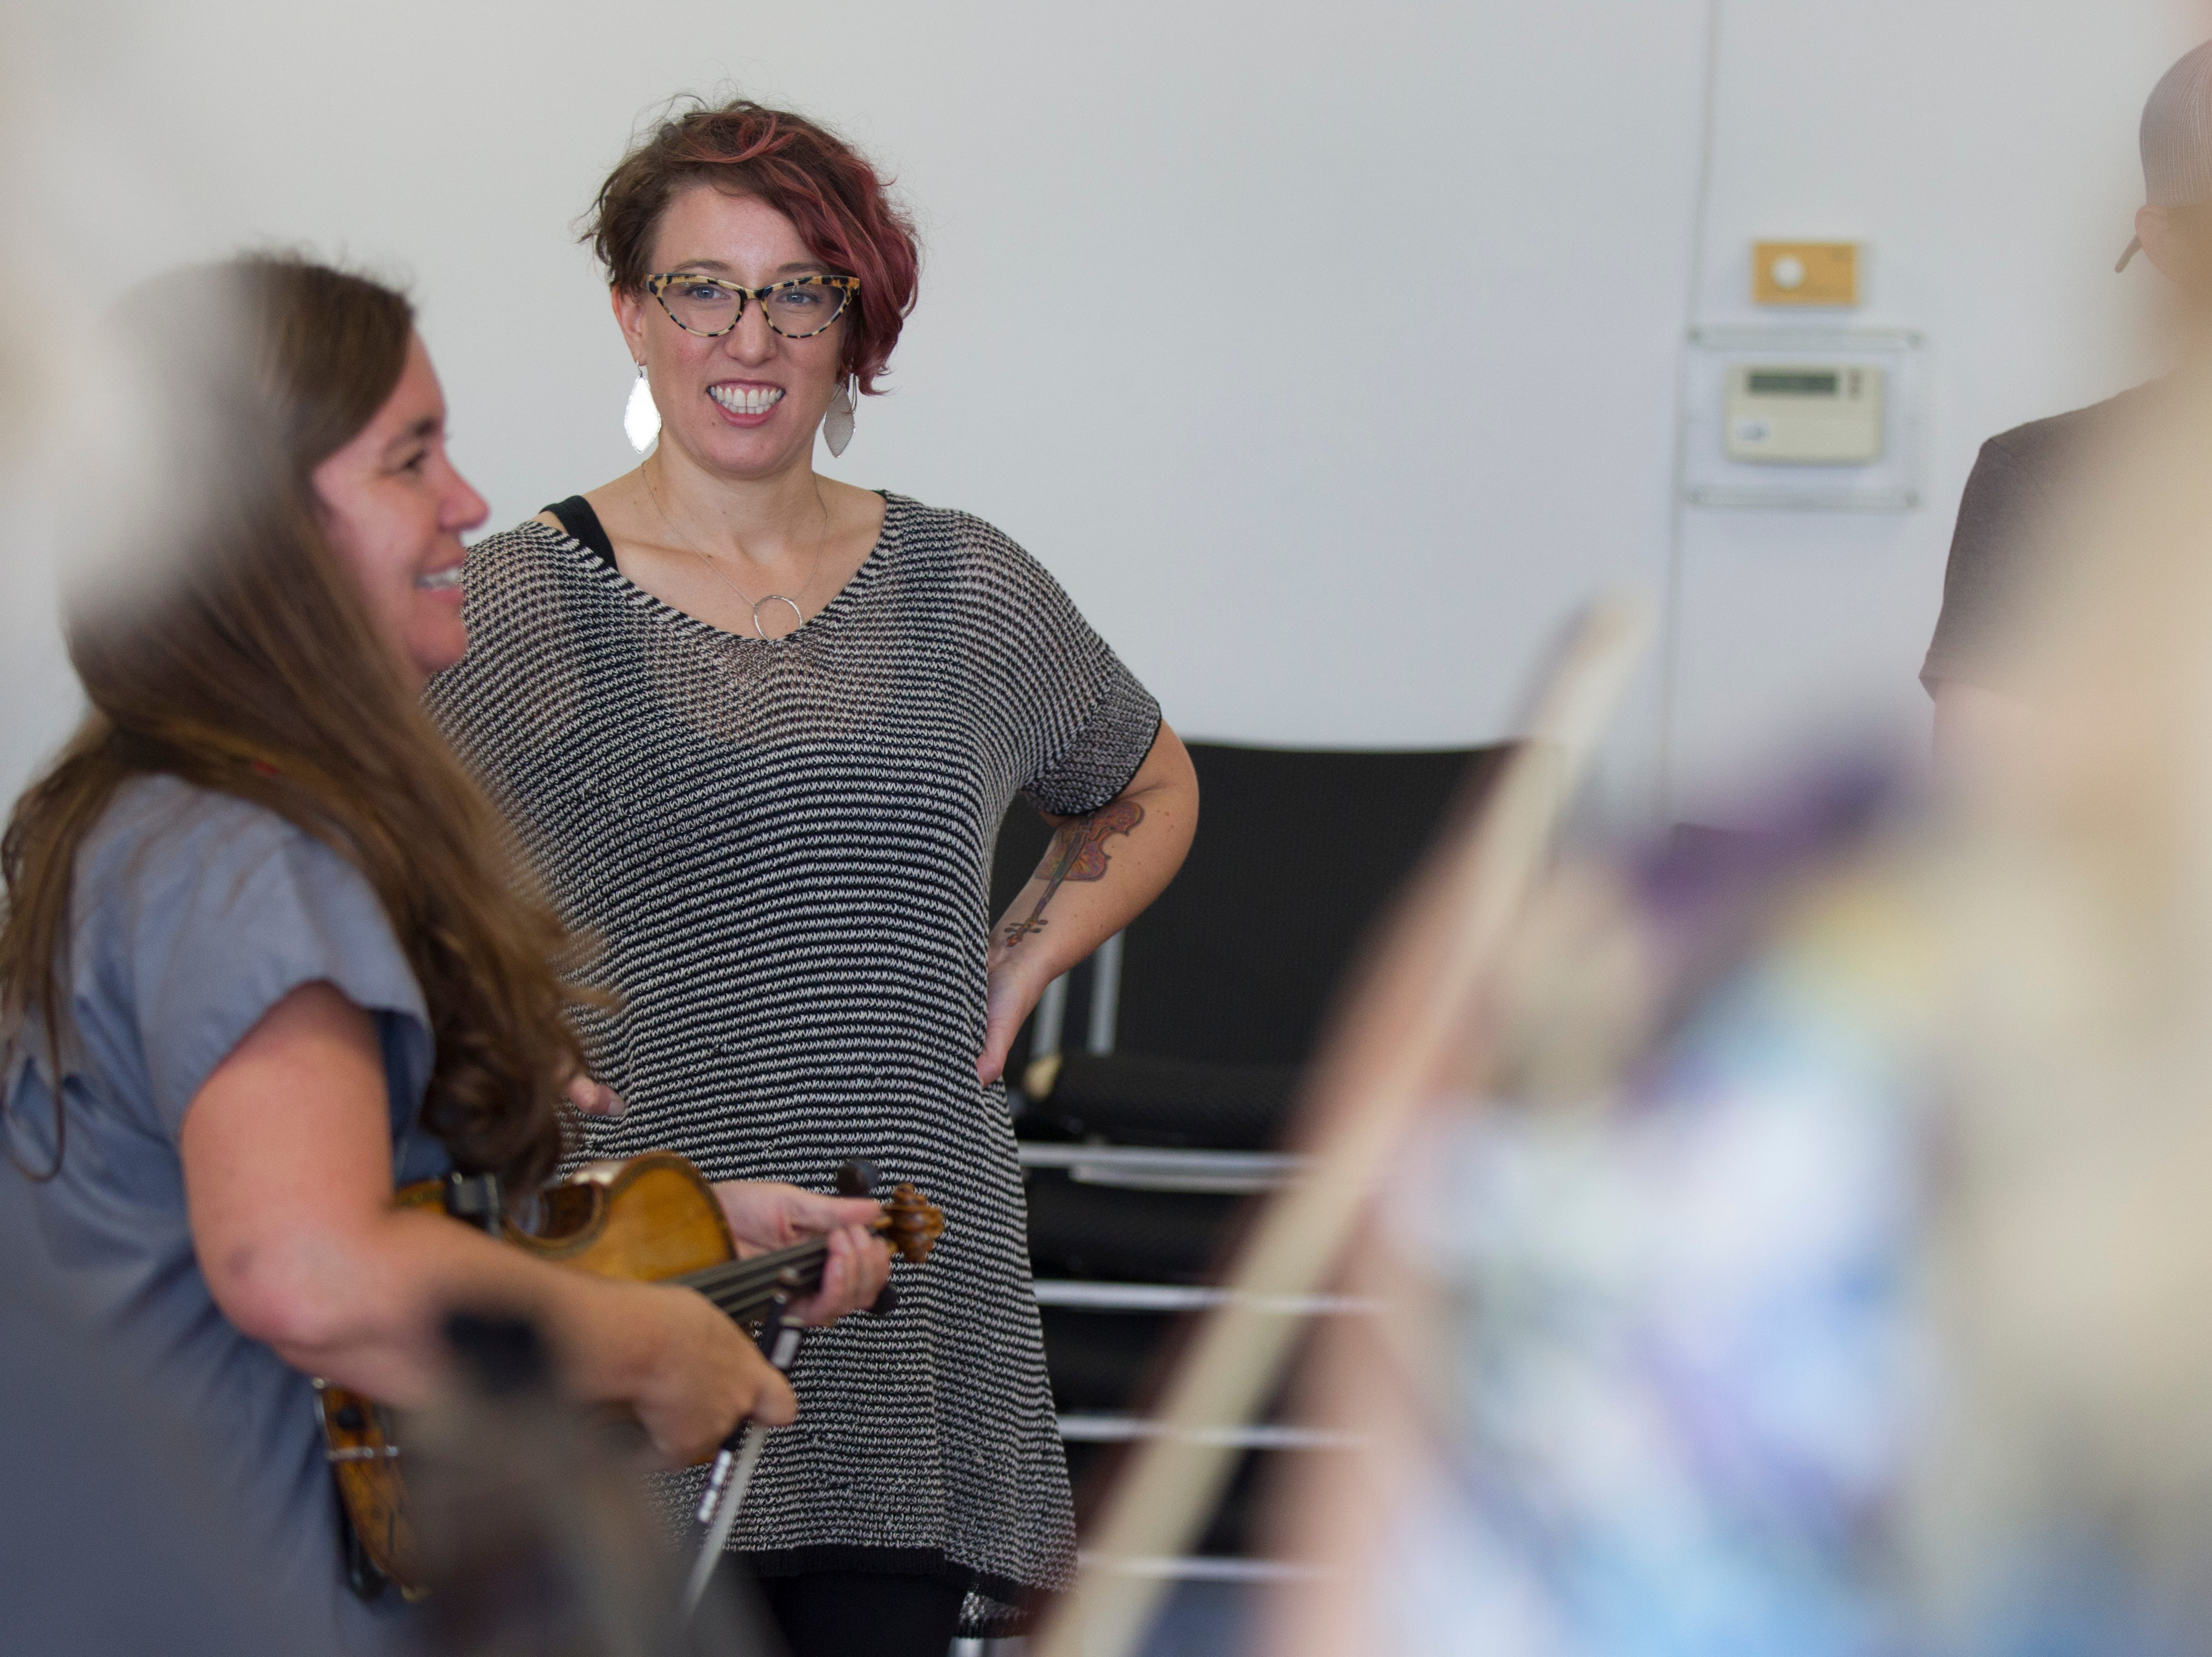 """Katie Senn, West Music content and community engagement manager and Awful Purdies cellist, listens to Annie Savage give instructions during a free """"Learn to Jam Bluegrass Workshop"""" on Wednesday, July 25, 2018, at West Music in Coralville, Iowa. Savage was joined by the other two members of the Savage Hearts trio during the two hour workshop."""